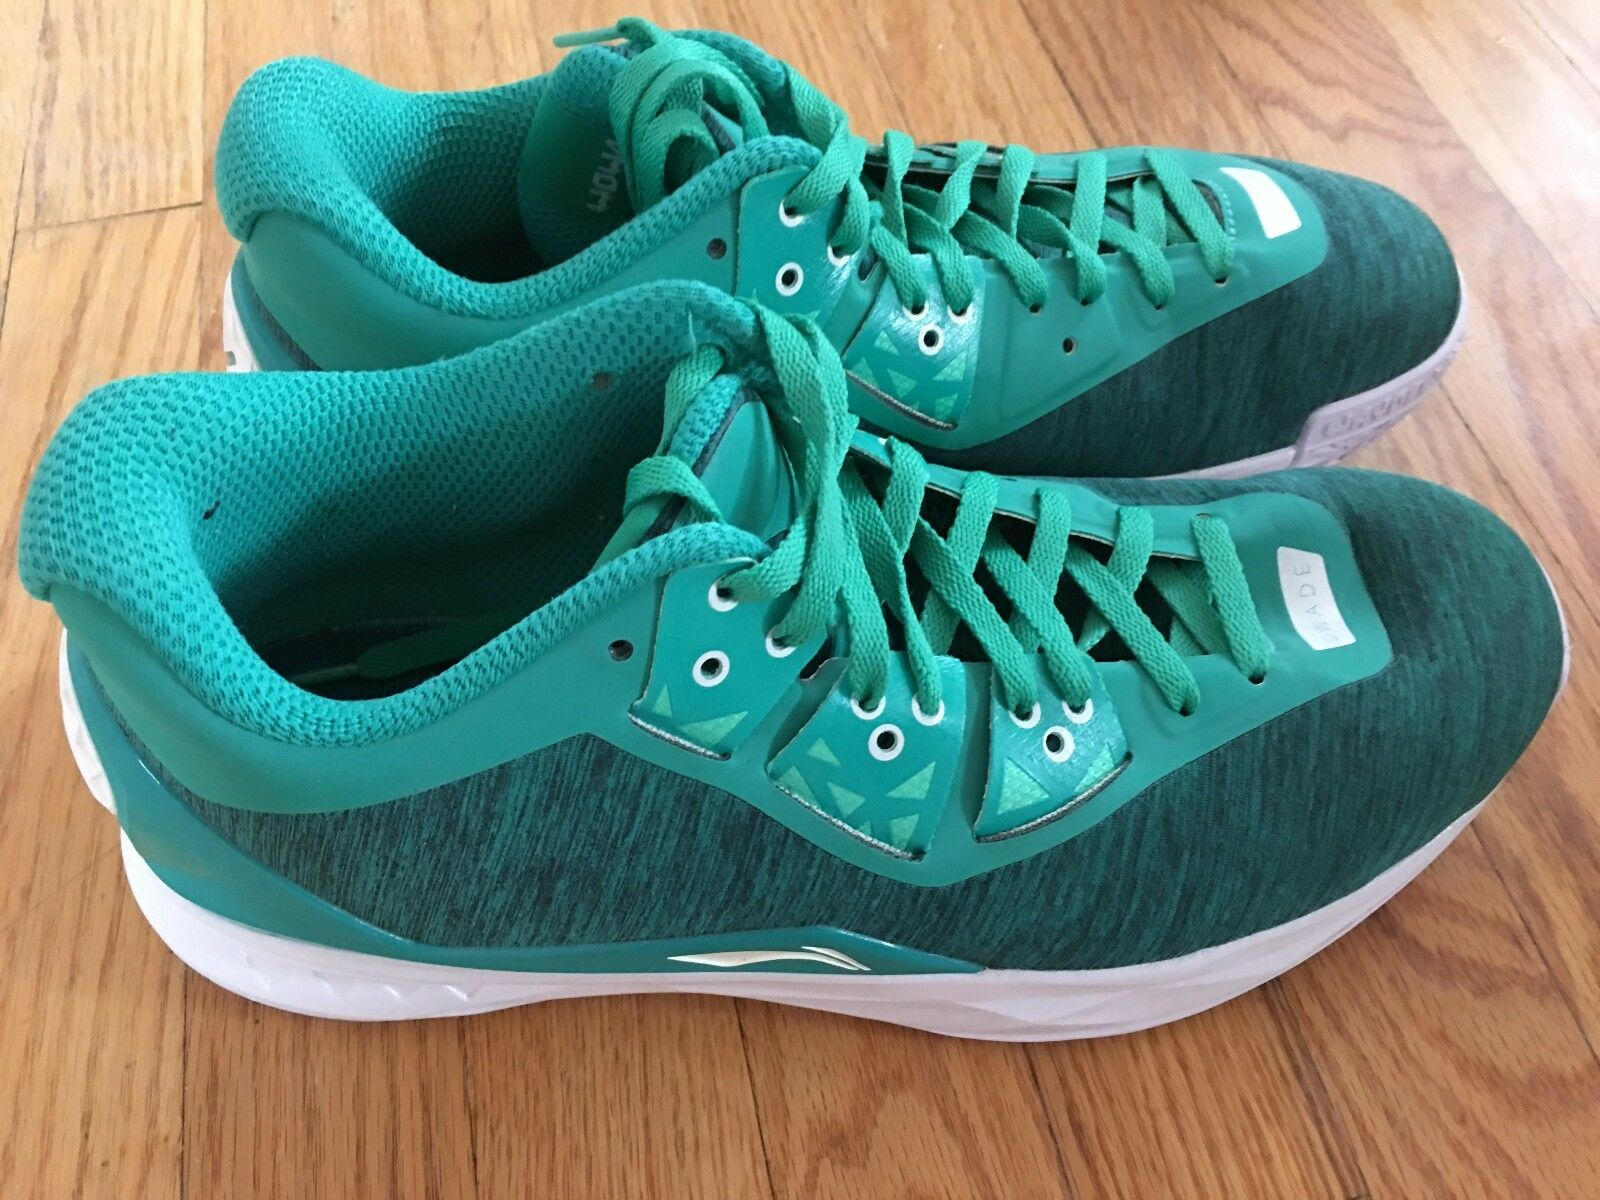 Li-Ning Way of Wade 4 Miami taille 10.5 porté 1x Excellent